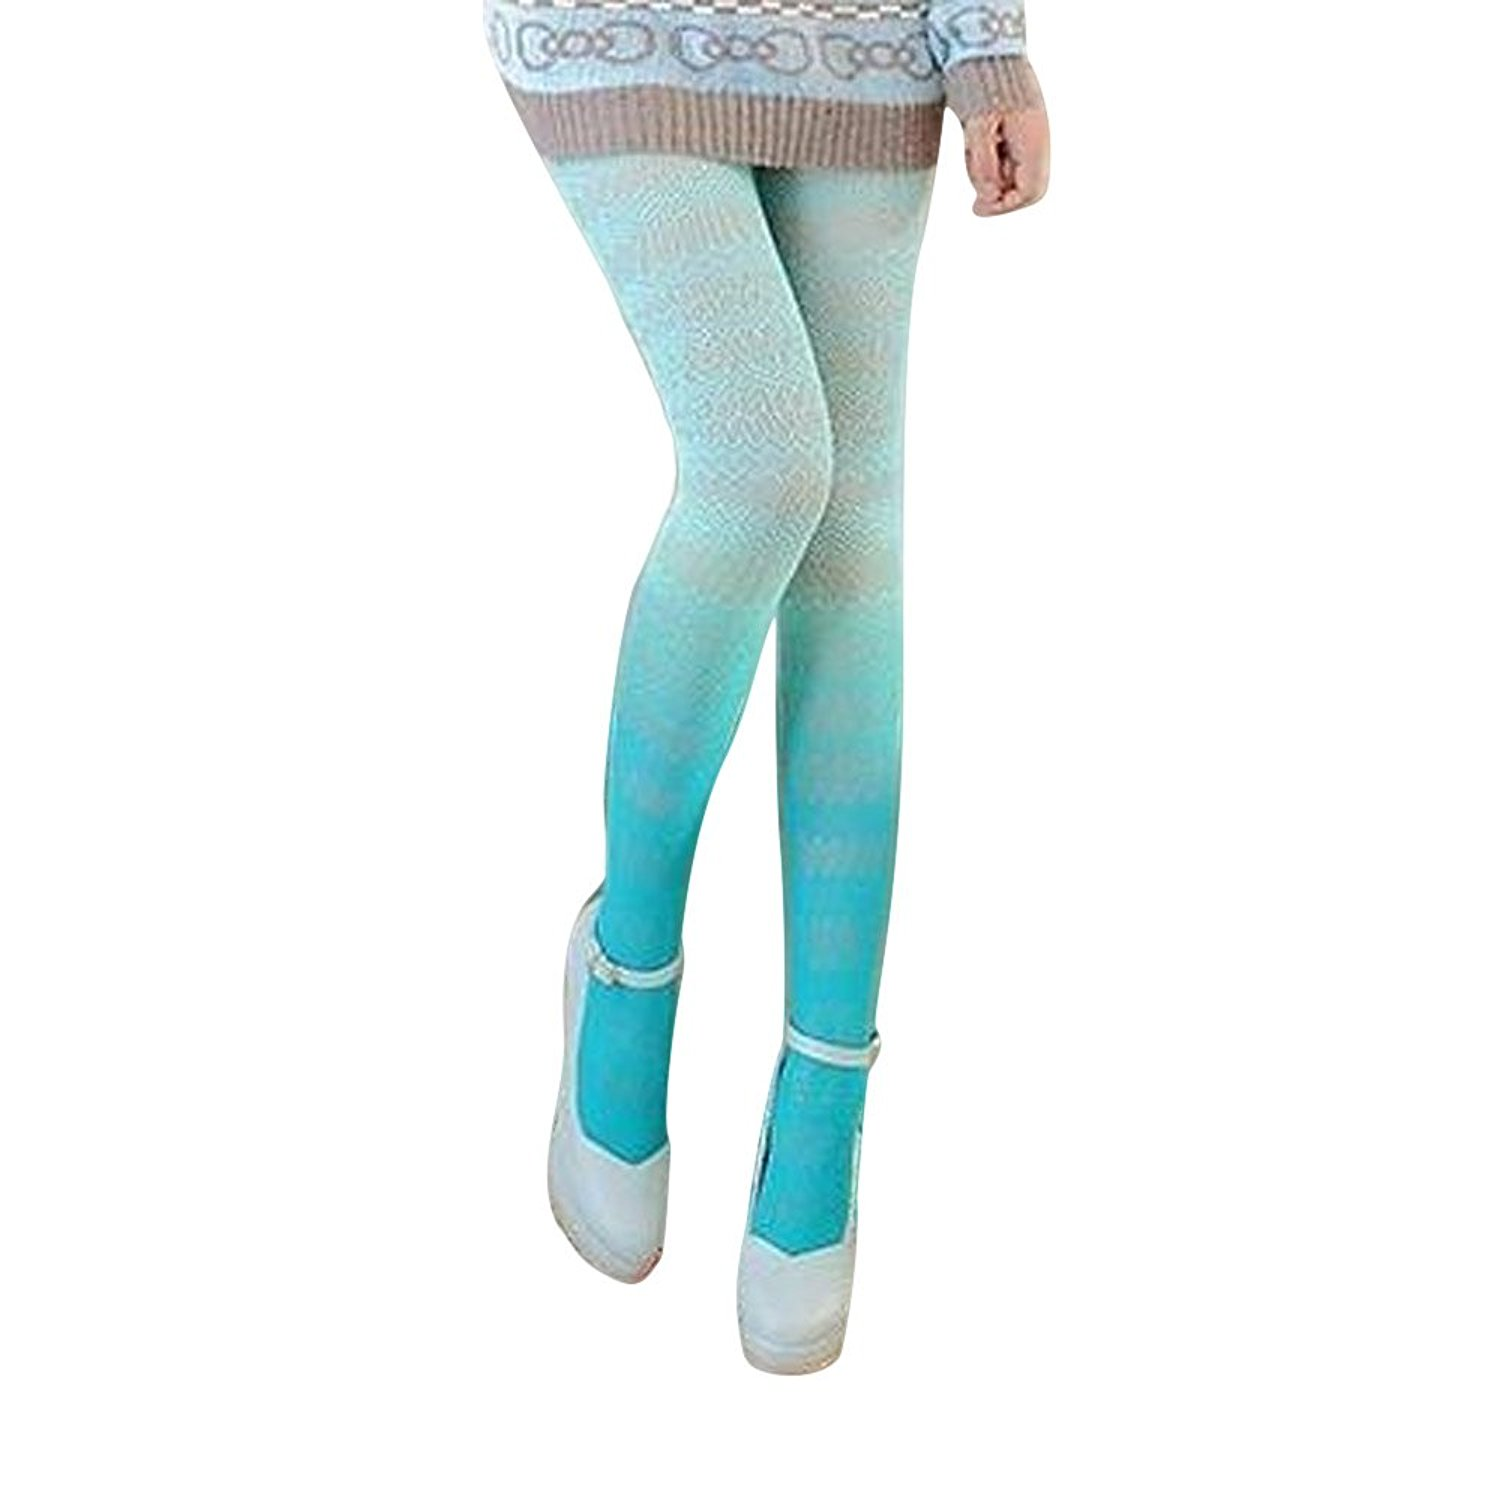 33b2ef478 Get Quotations · Generic Womens New Fishnet Tights Lace Pantyhose Gradients  Colored Sexy Hosiery Colorful Mesh Tights